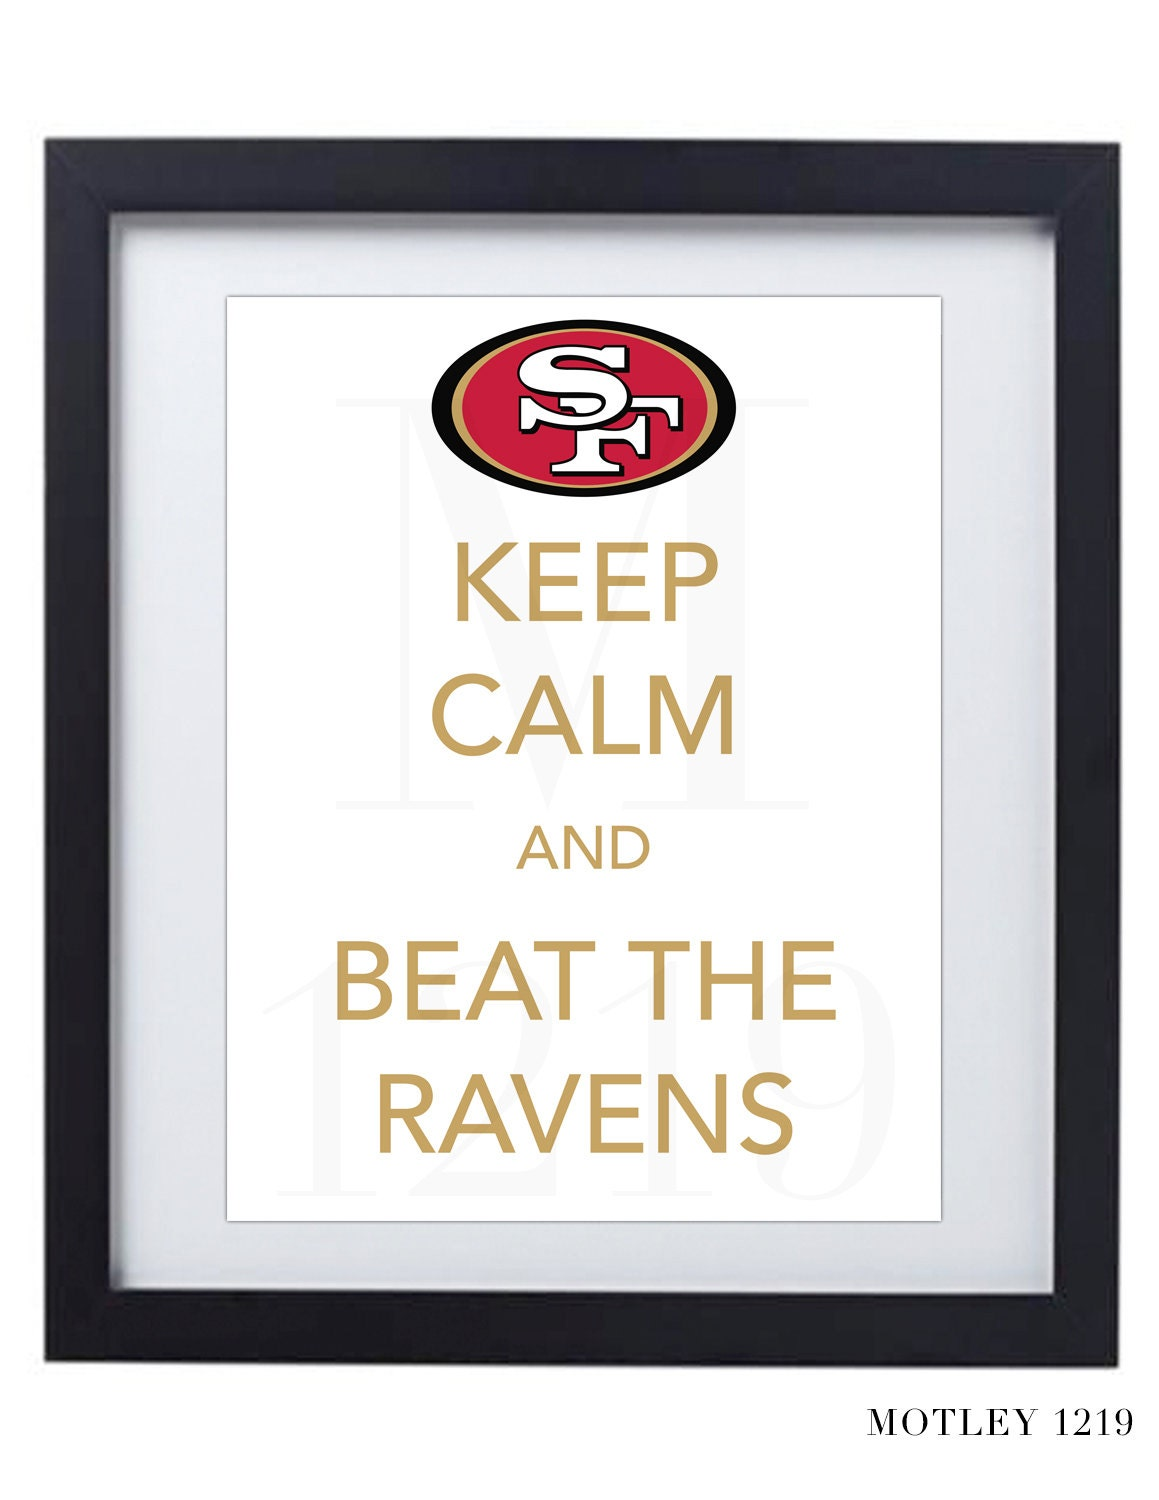 San Francisco 49ers Niners Keep Calm and Beat the Ravens Superbowl Printable Digital Poster - Motley1219